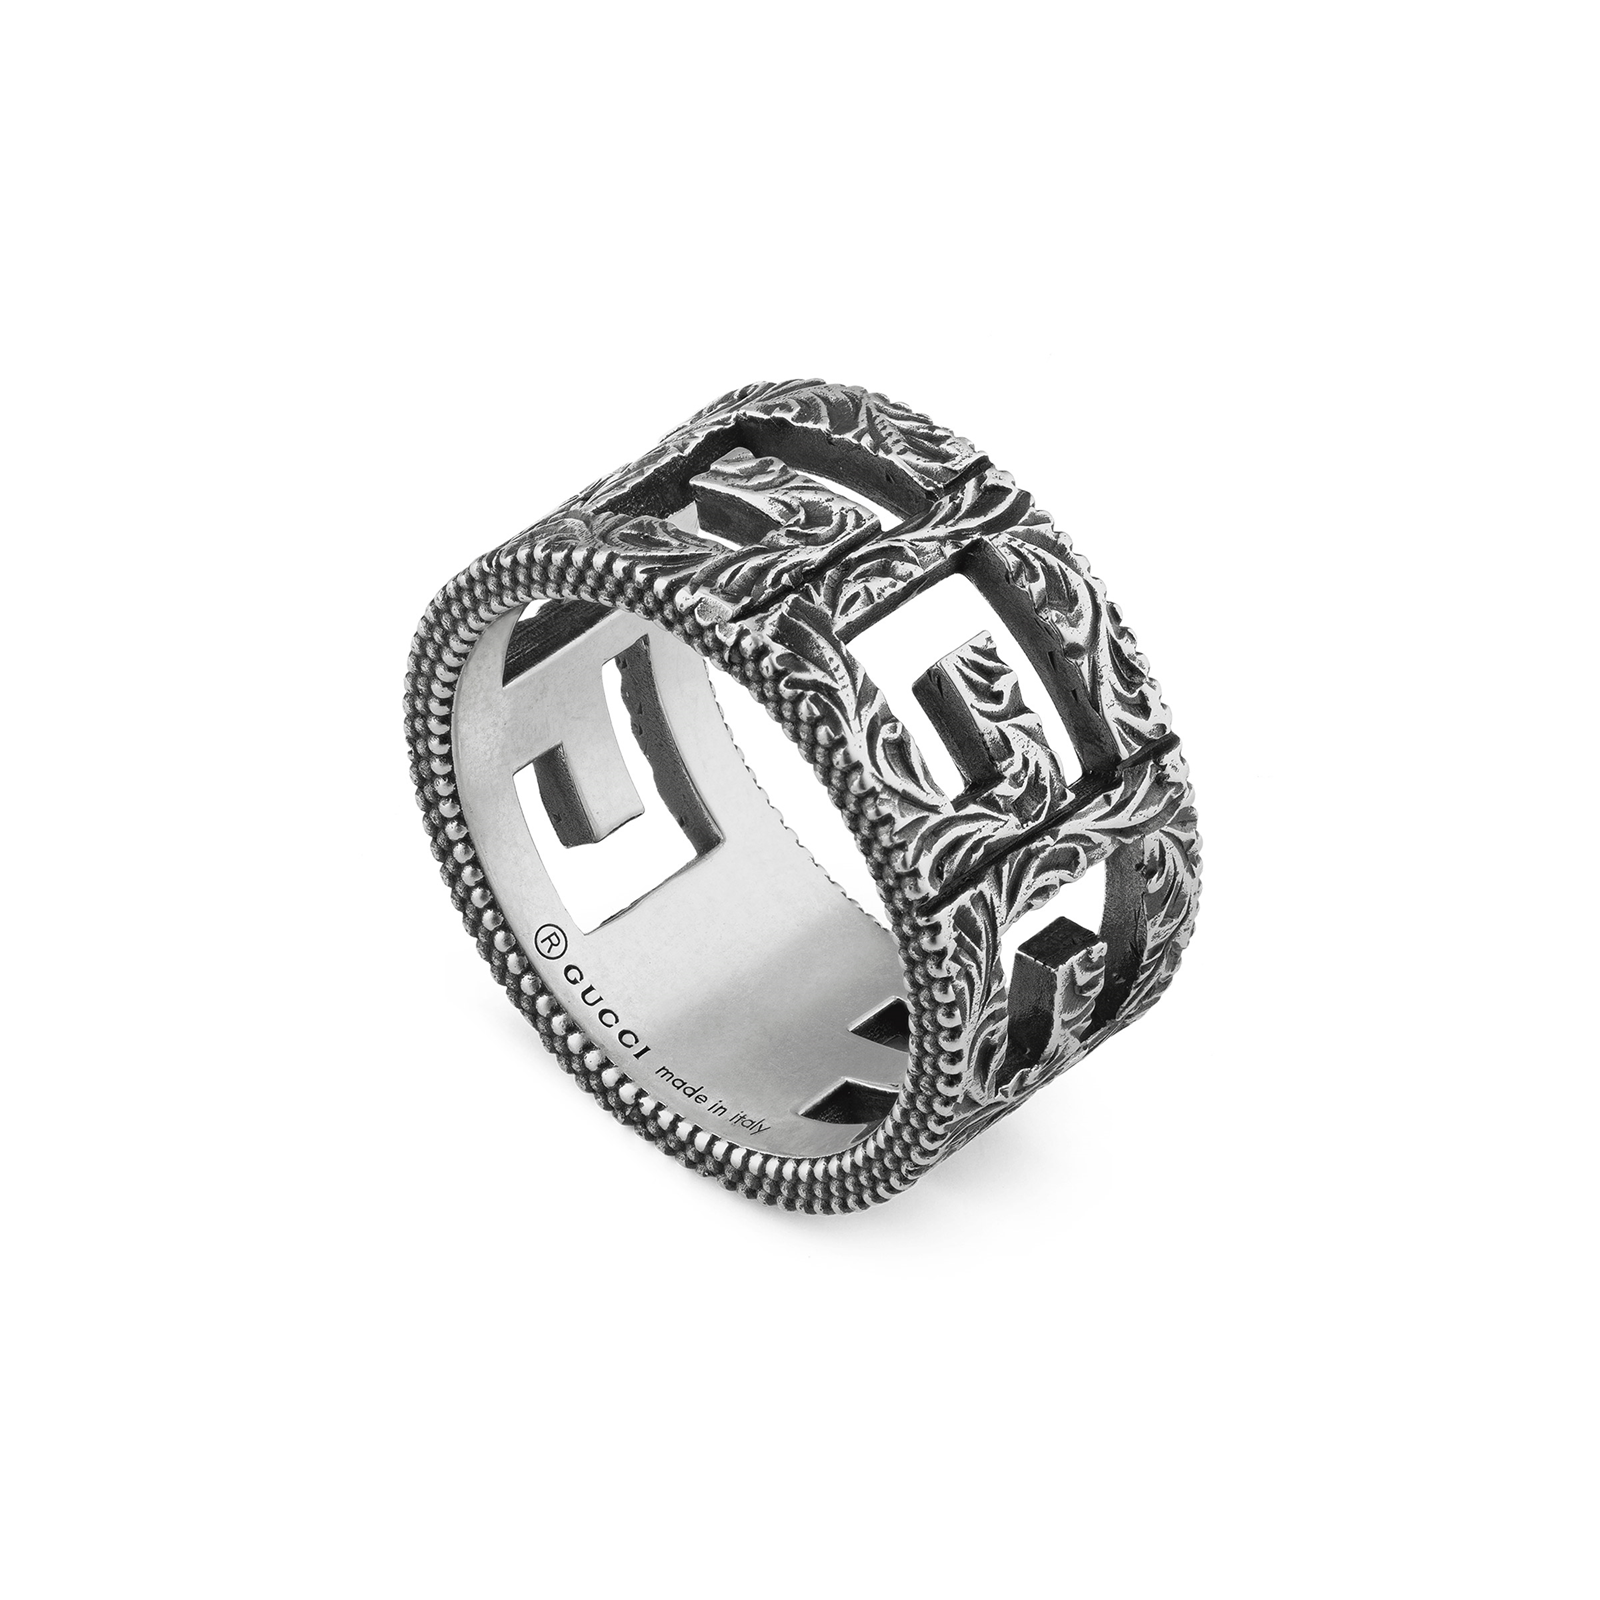 Gucci Ring with Square G Motif in Silver - Ring Size O